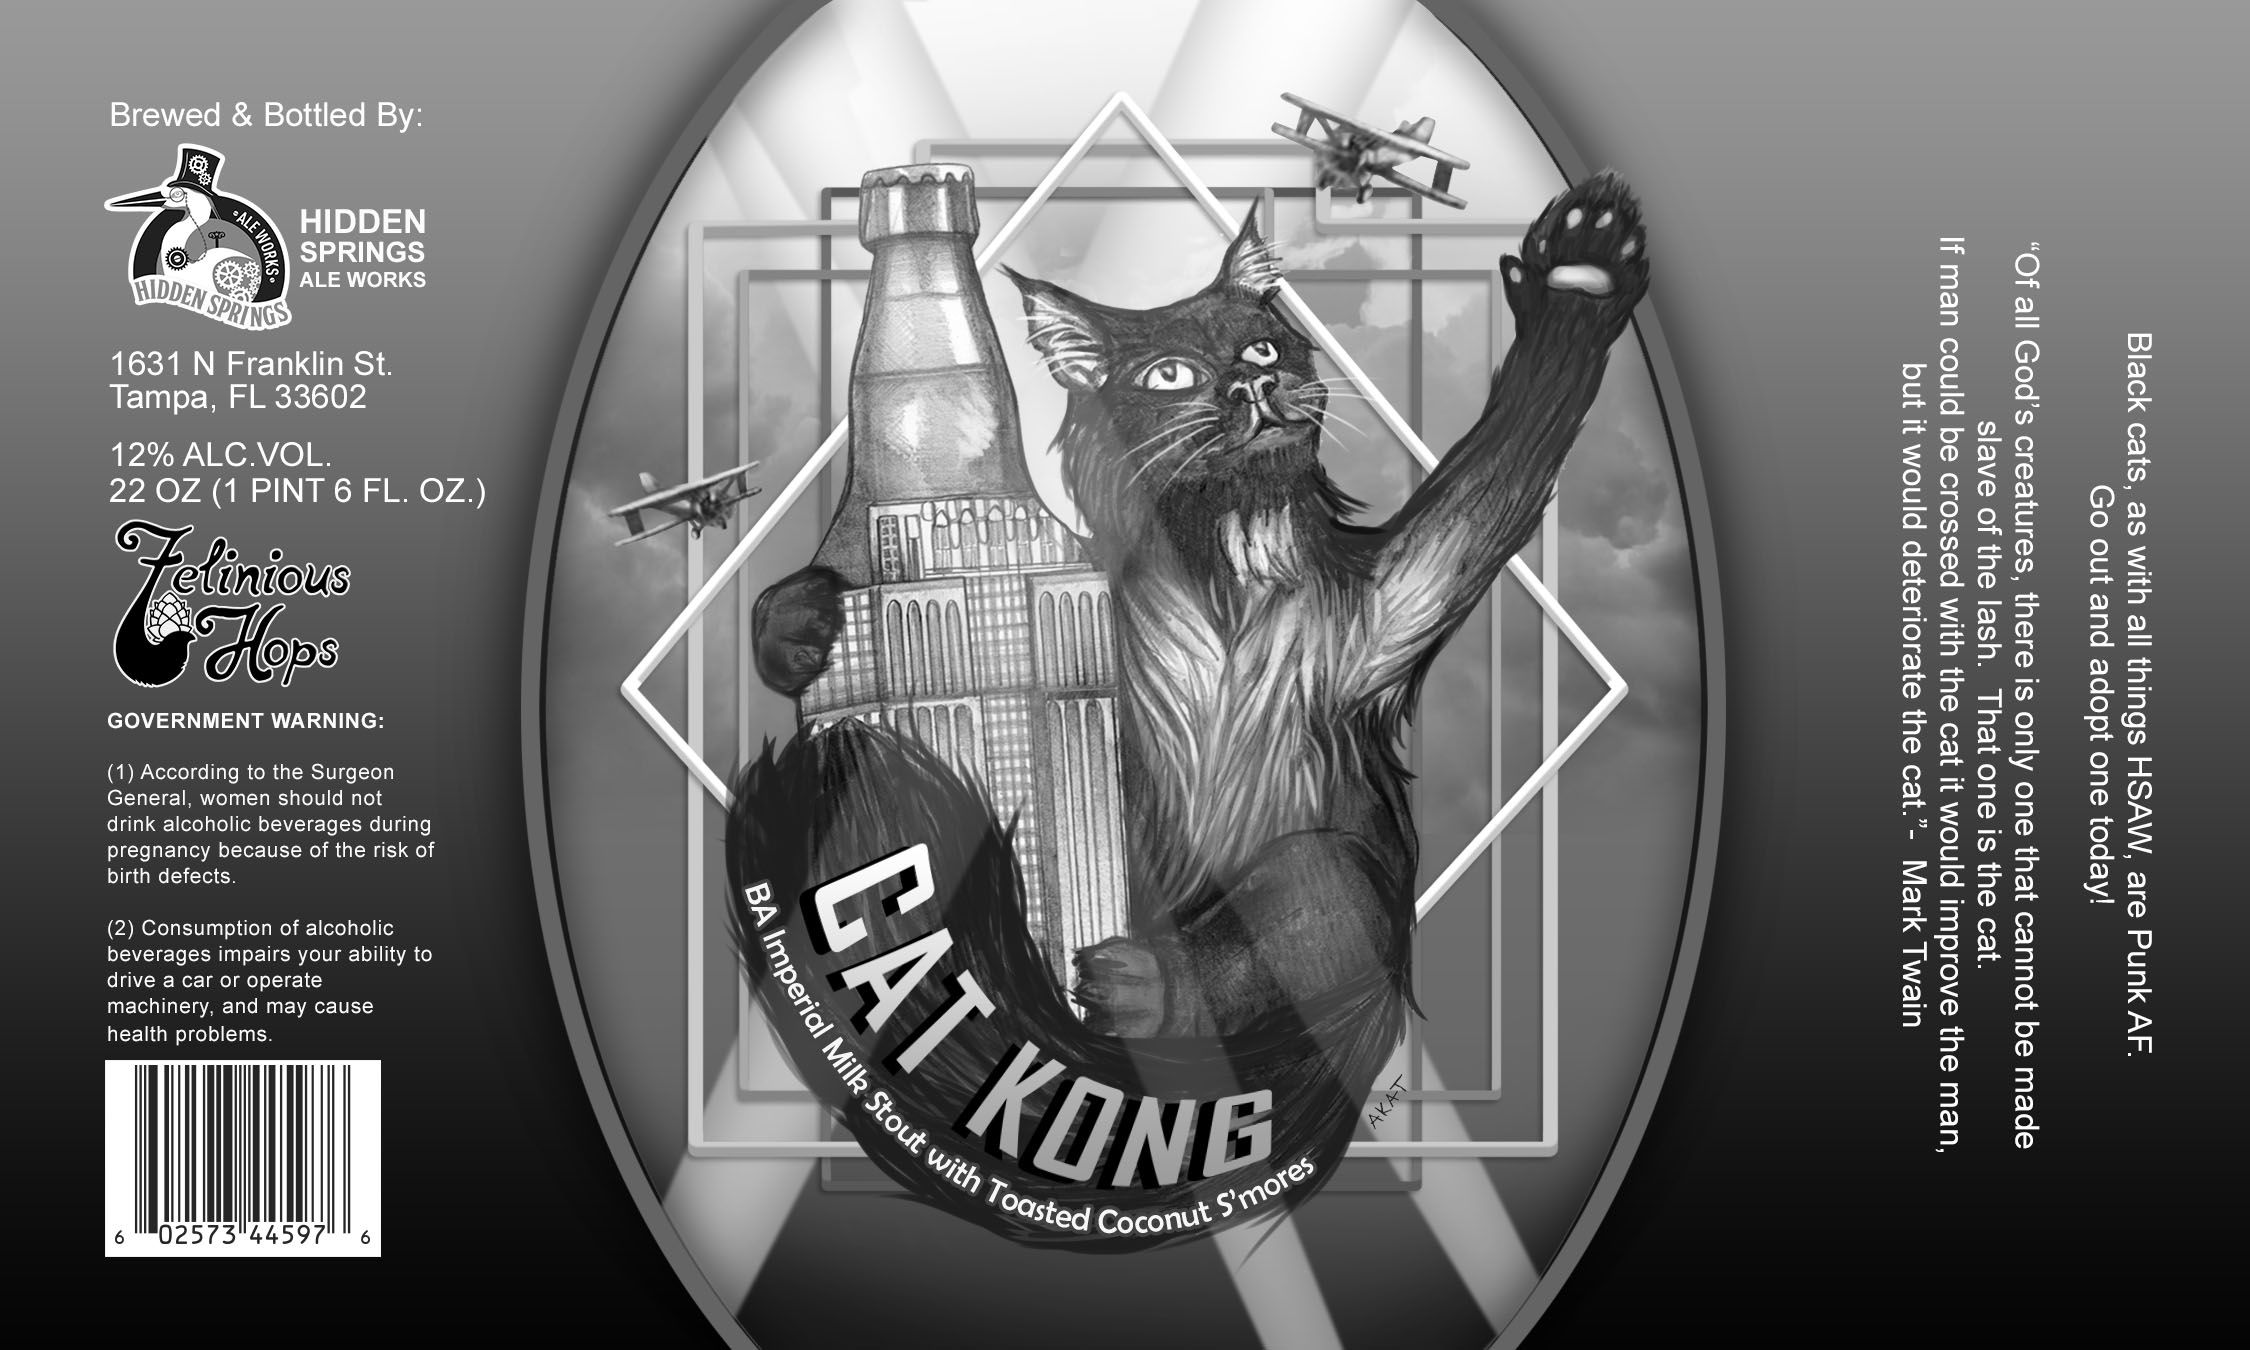 Cat Kong beer label collaboration with Hidden Springs Ale Works and Felinious Hops